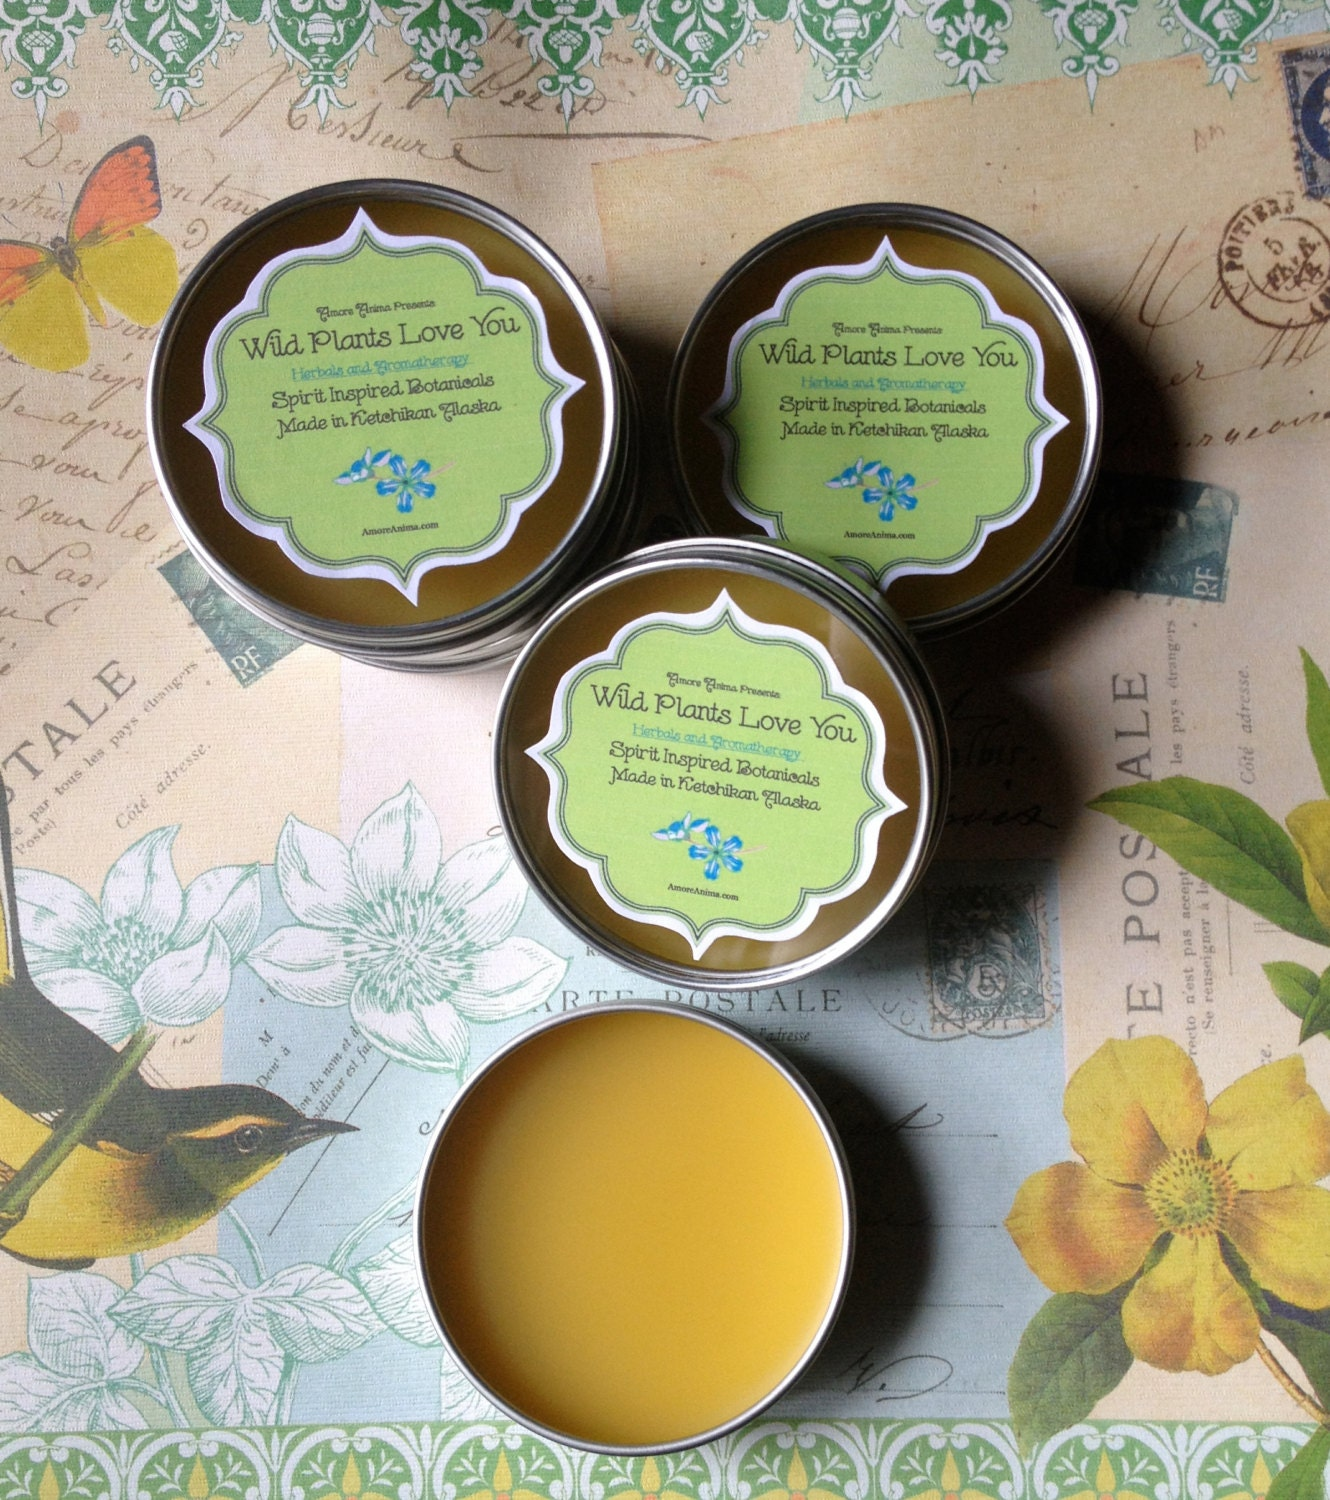 Aches N Pains Salve For old injuries, or chronic pain